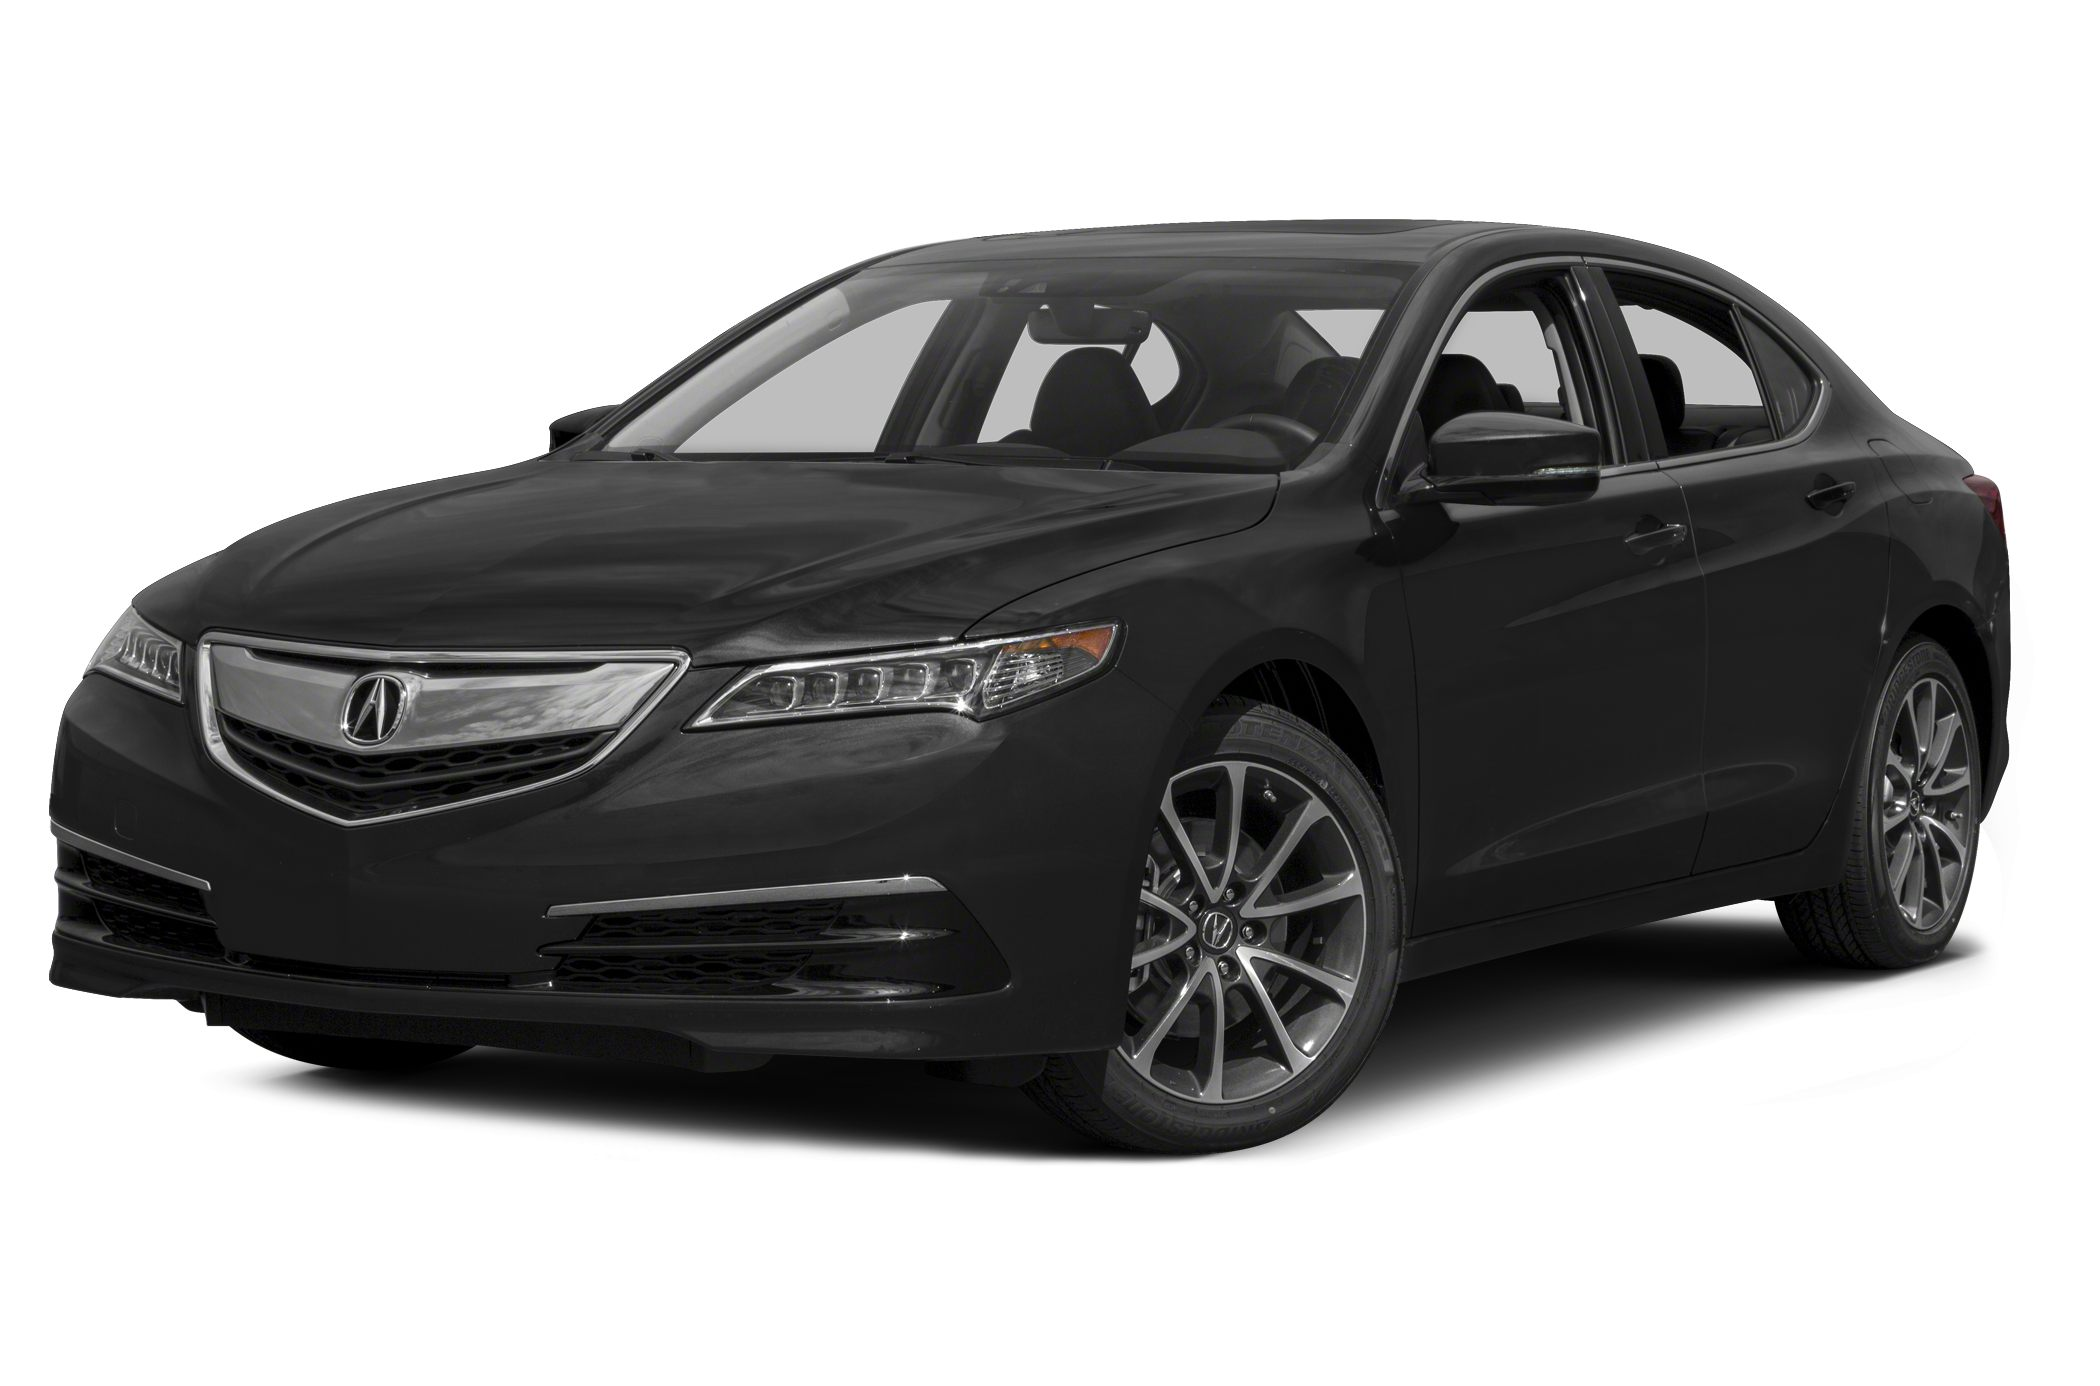 2015 Acura TLX V6 Tech Clean Carfax - Technology Package - Backup Camera - Bluetooth - Alloy Wheel